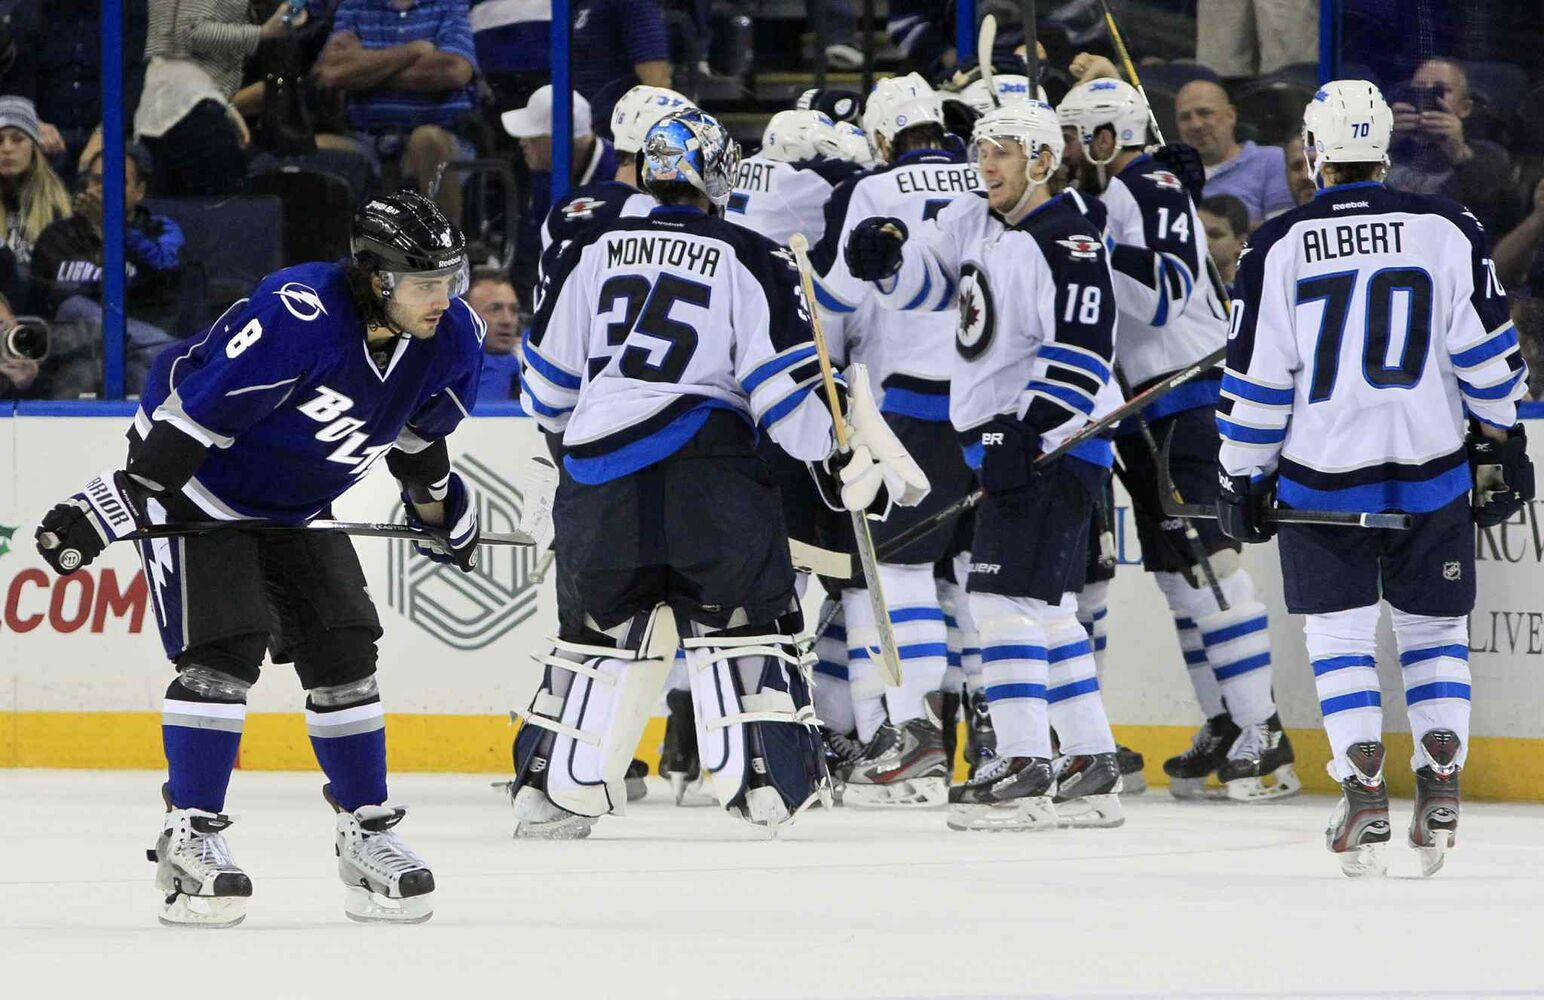 The Tampa Bay Lightning's Mark Barberio (left) skates off as the Winnipeg Jets celebrate their game-winning overtime goal for a 2-1 win. (Dirk Shadd / Tampa Bay Times / MCT)